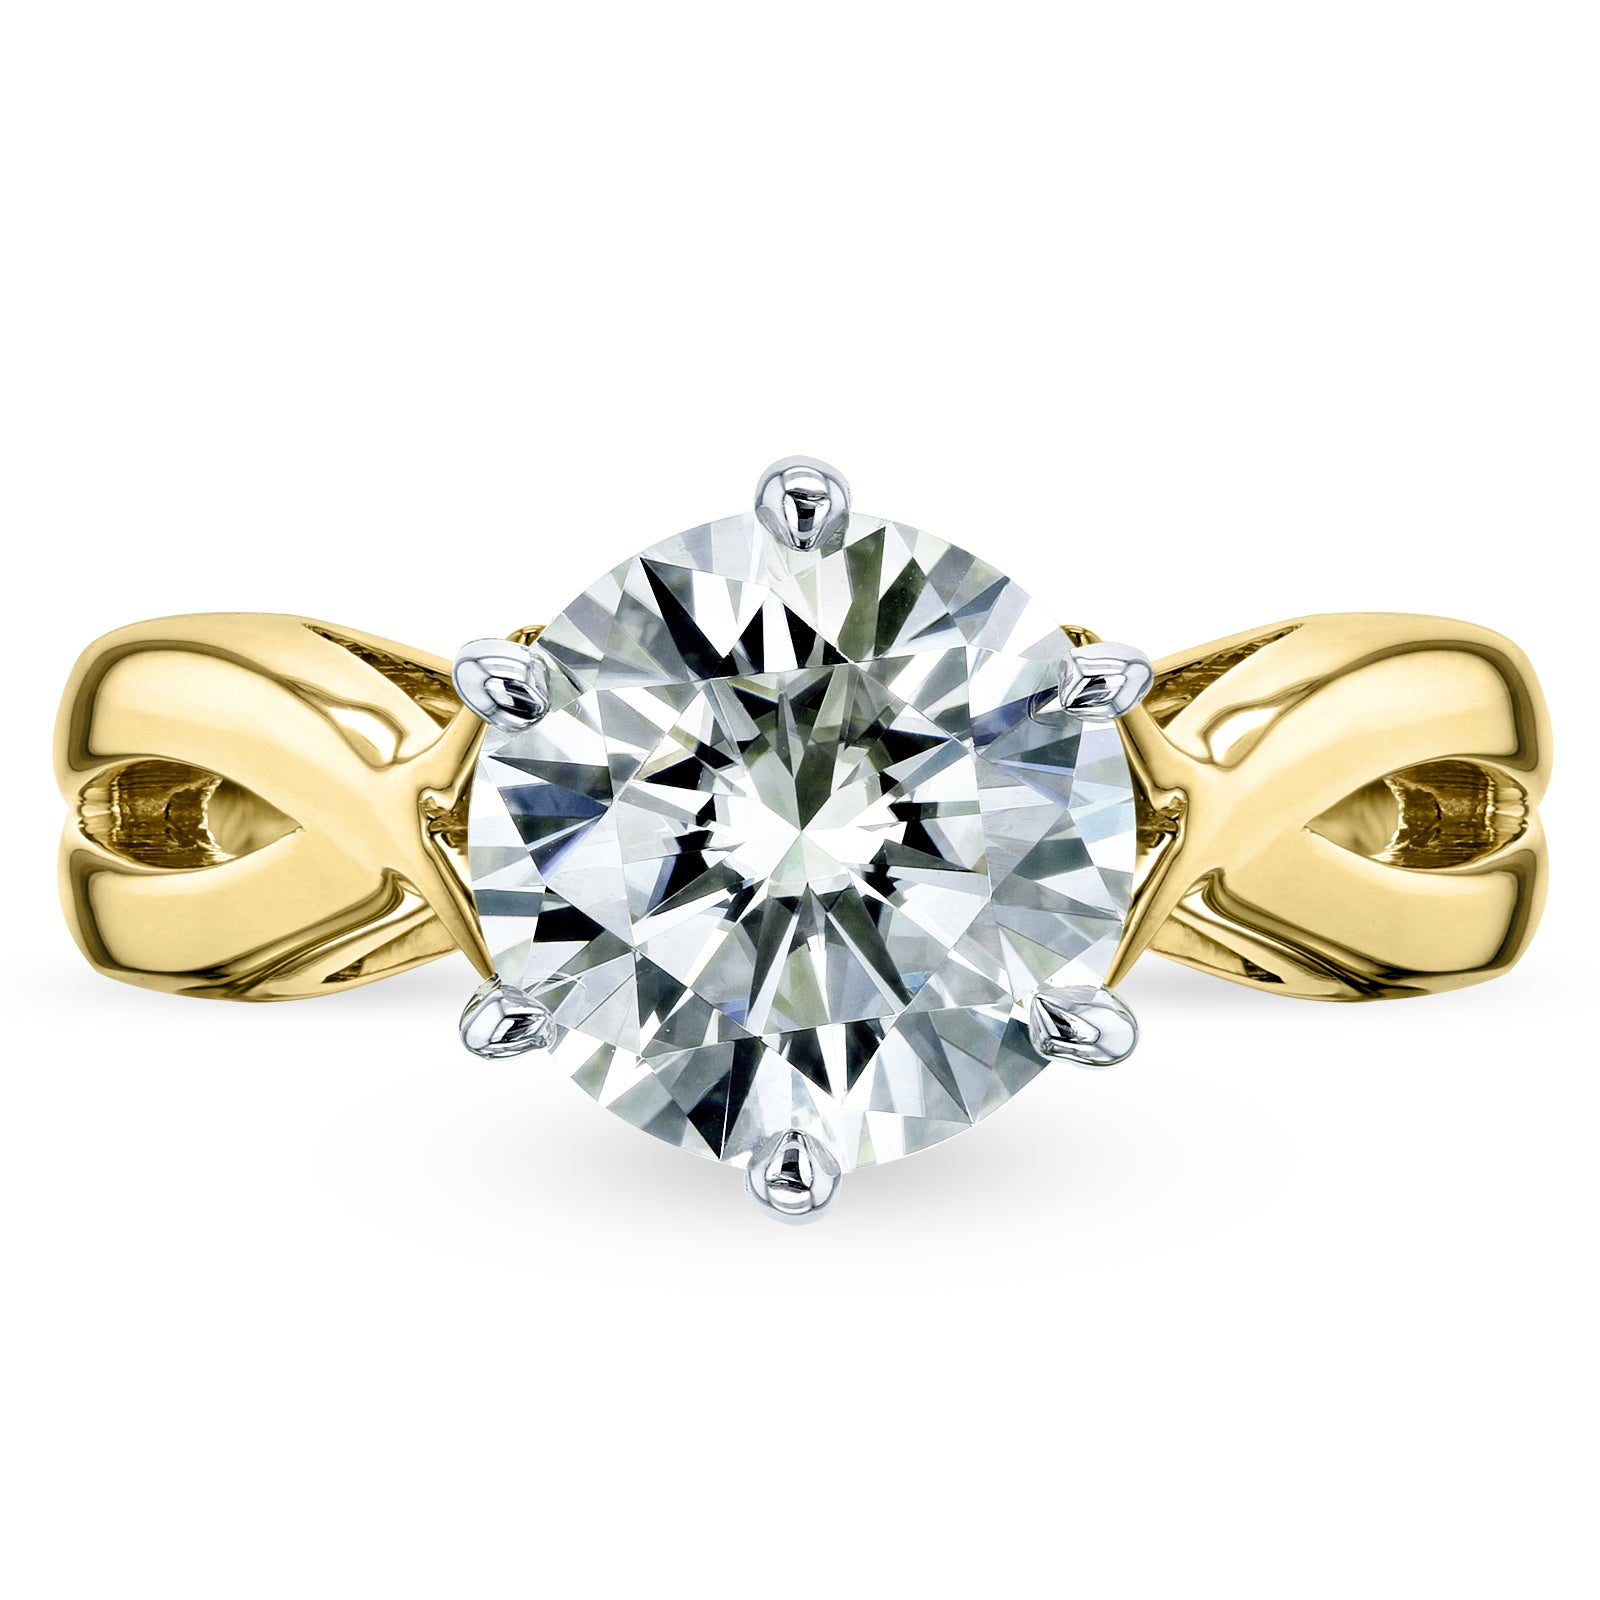 Discounts 1.9ct Moissanite 6-Prong Crossover Solitaire Ring - 8.5 yellow-gold Forever One D-E-F